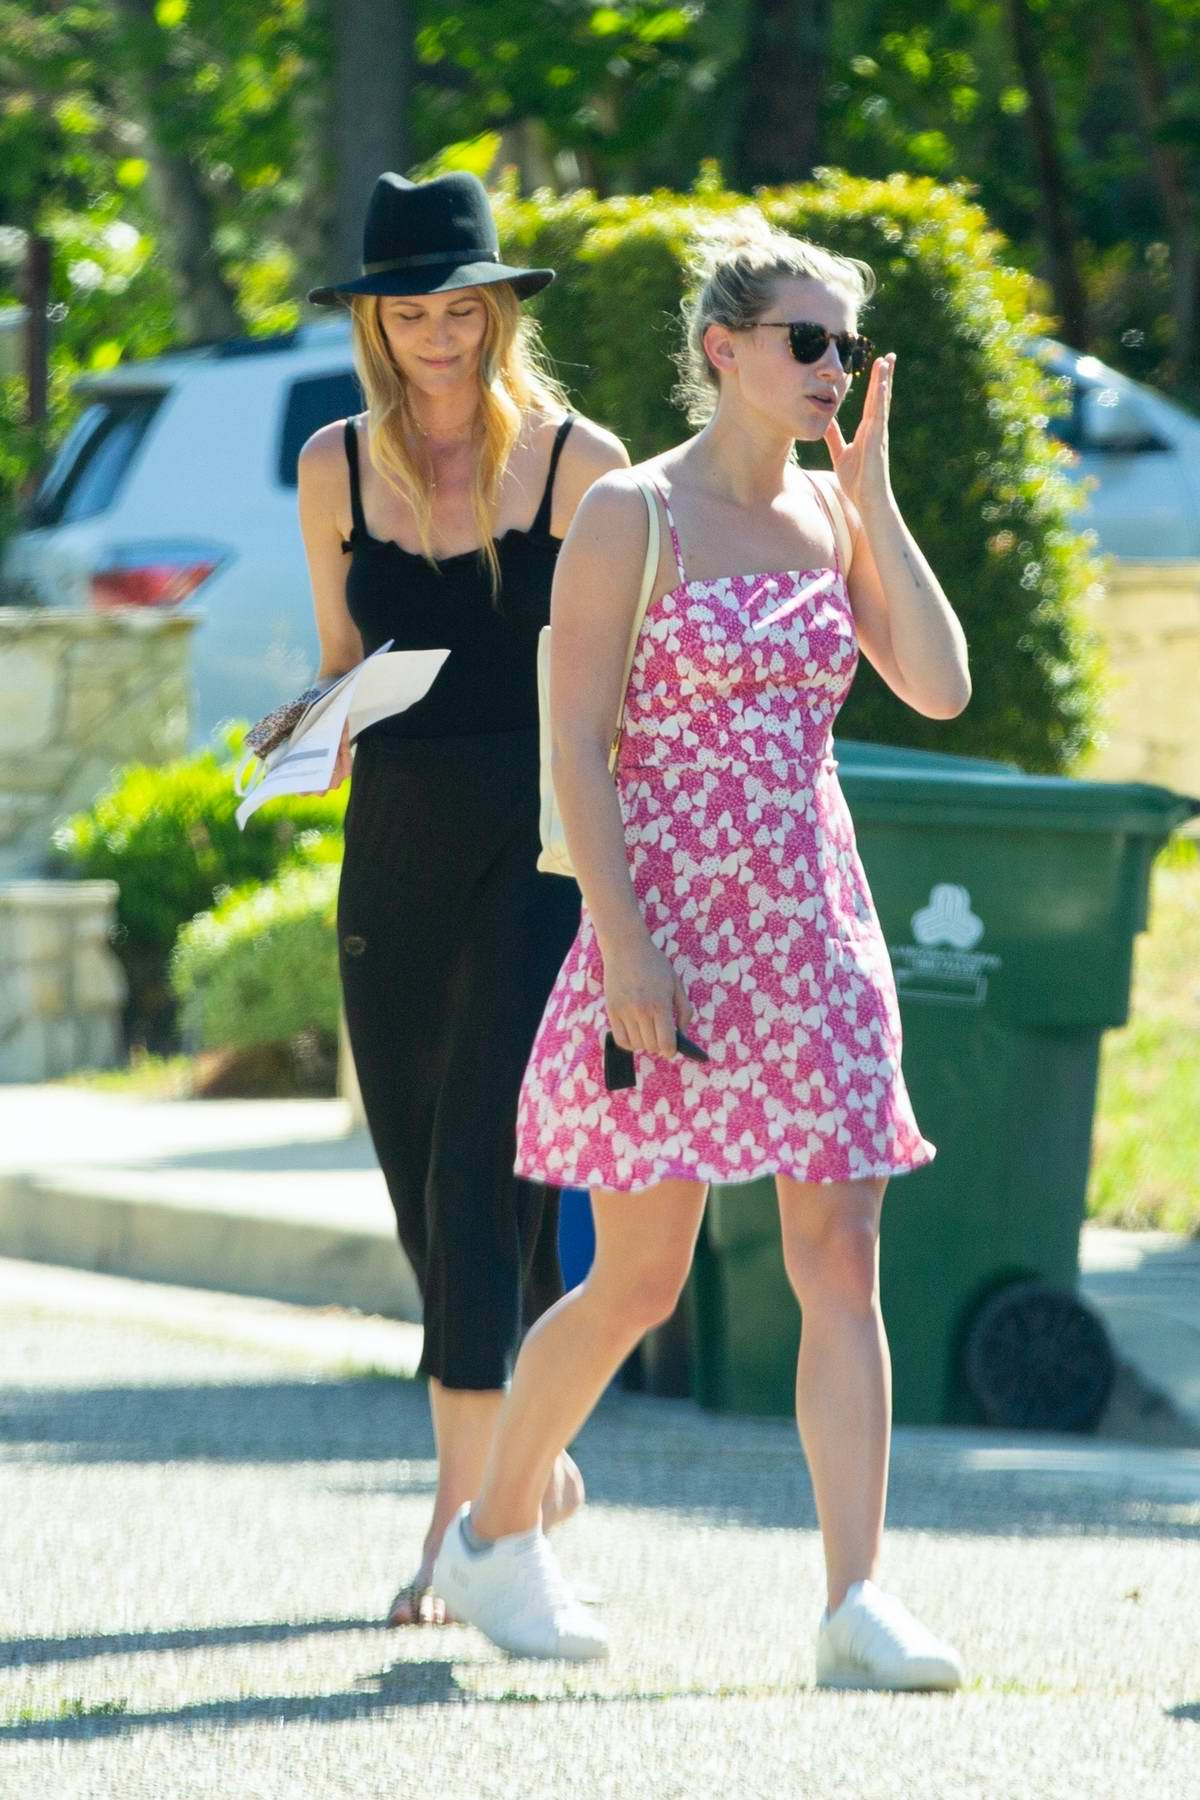 Lili Reinhart is pretty in pink as she goes house hunting with a real estate agent in Los Angeles